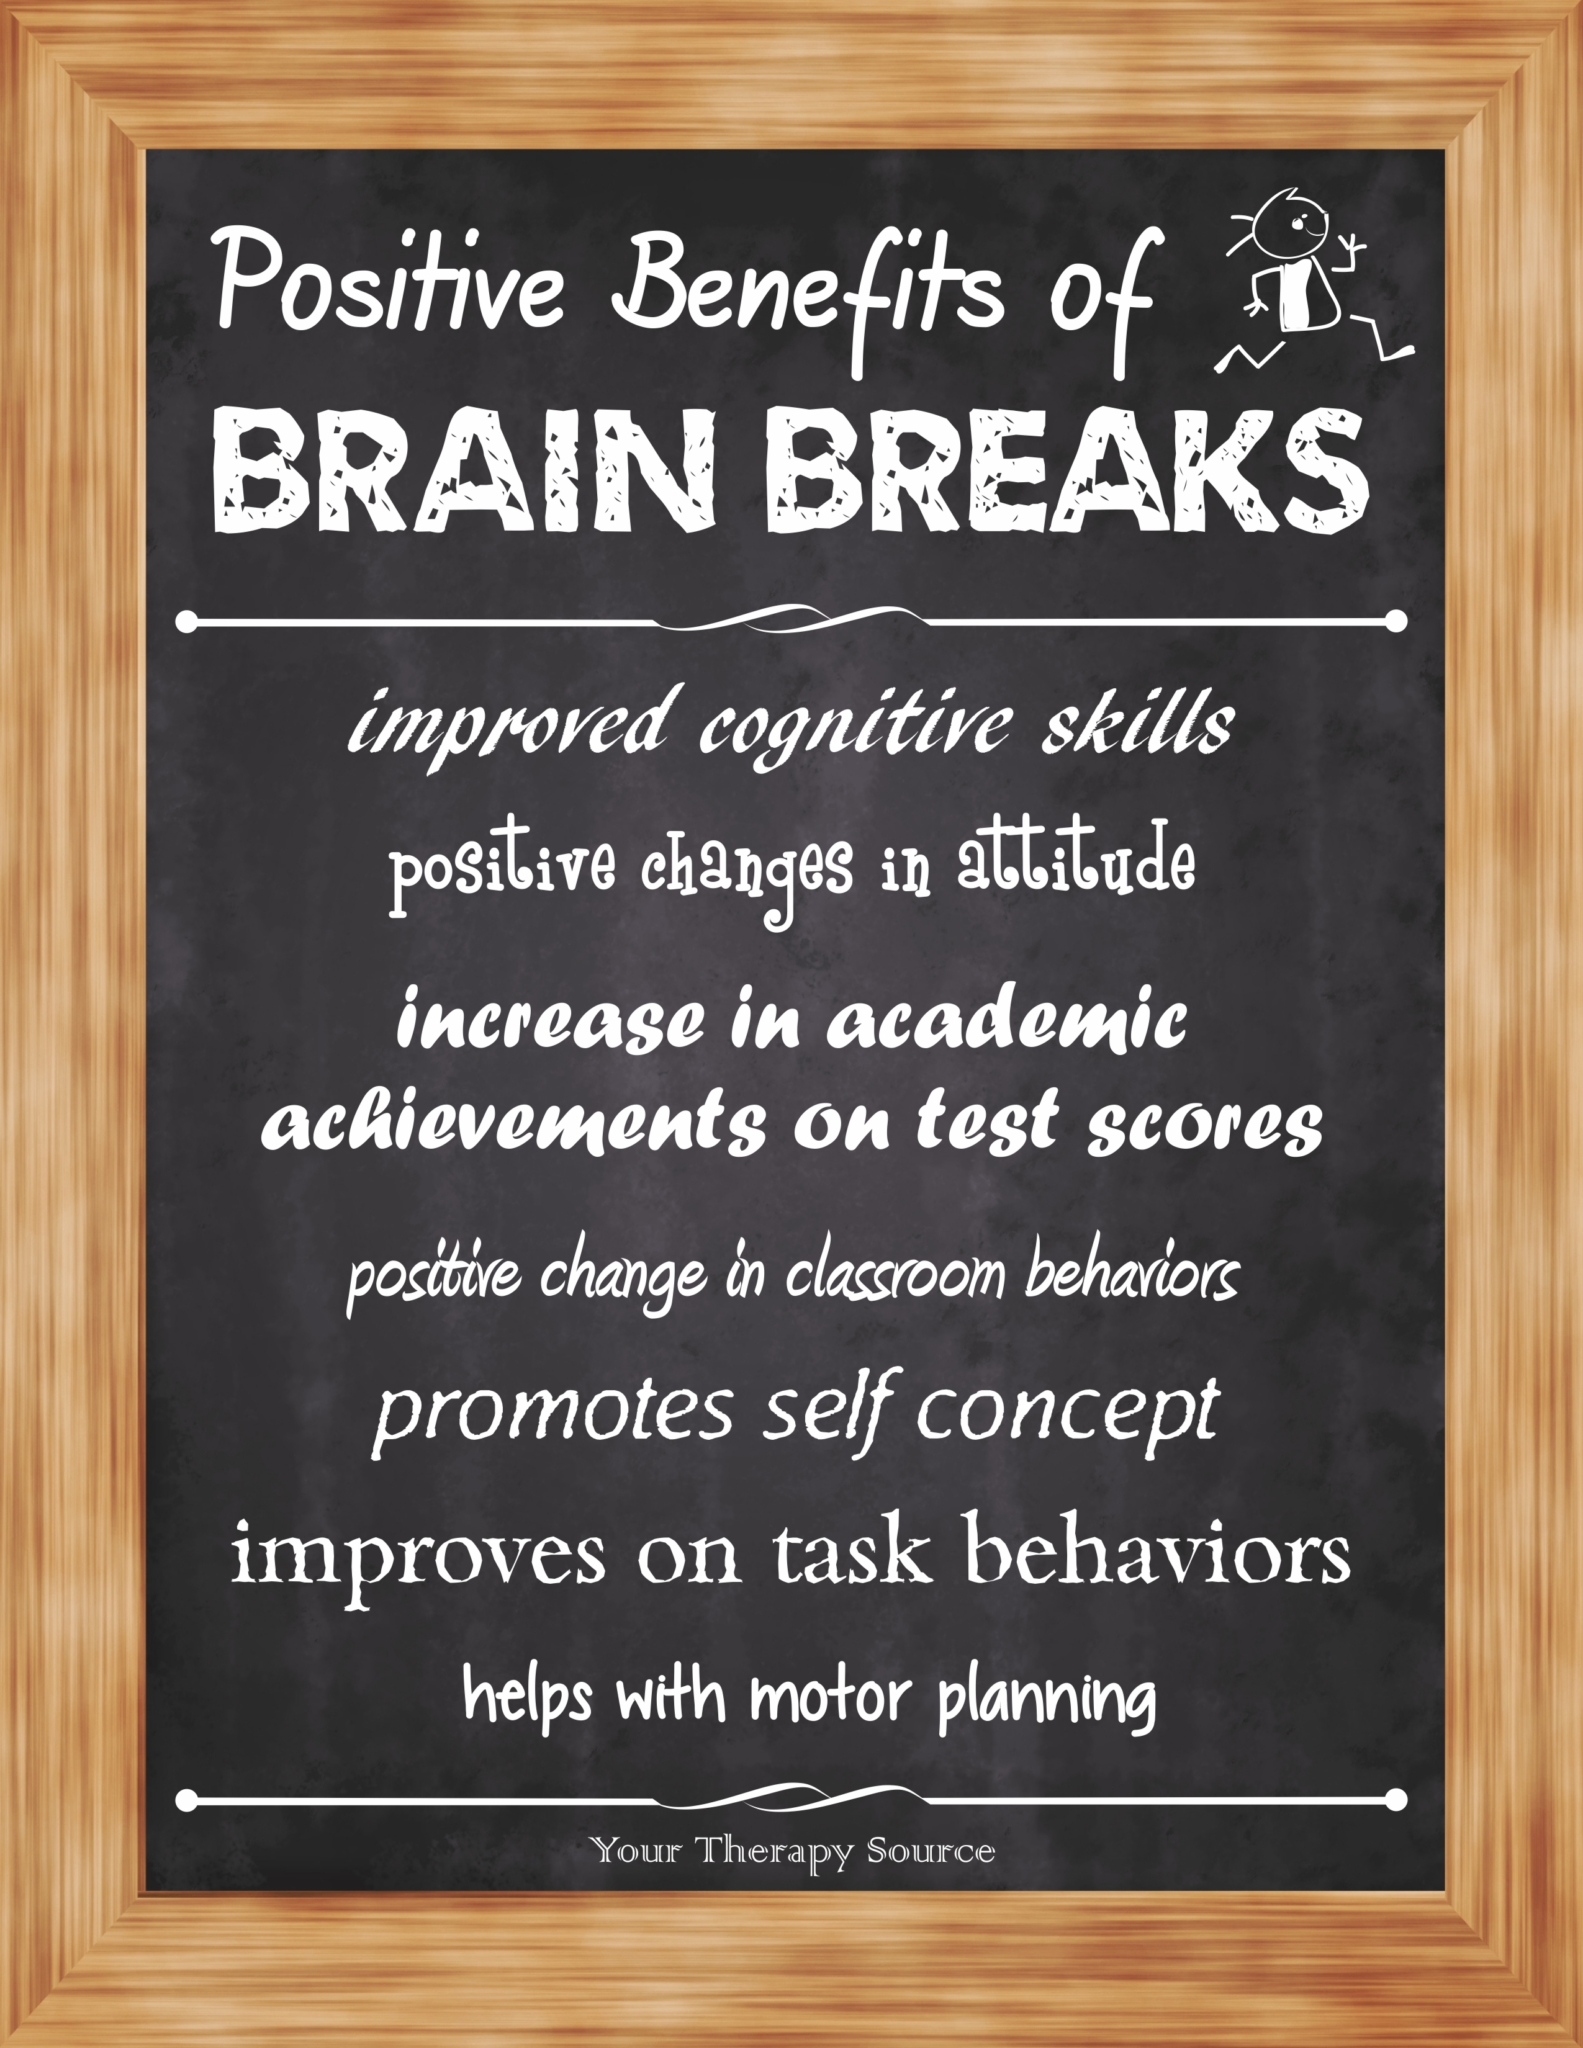 positive benefits of brain breaks from www.YourTHerapySource.com/blog1